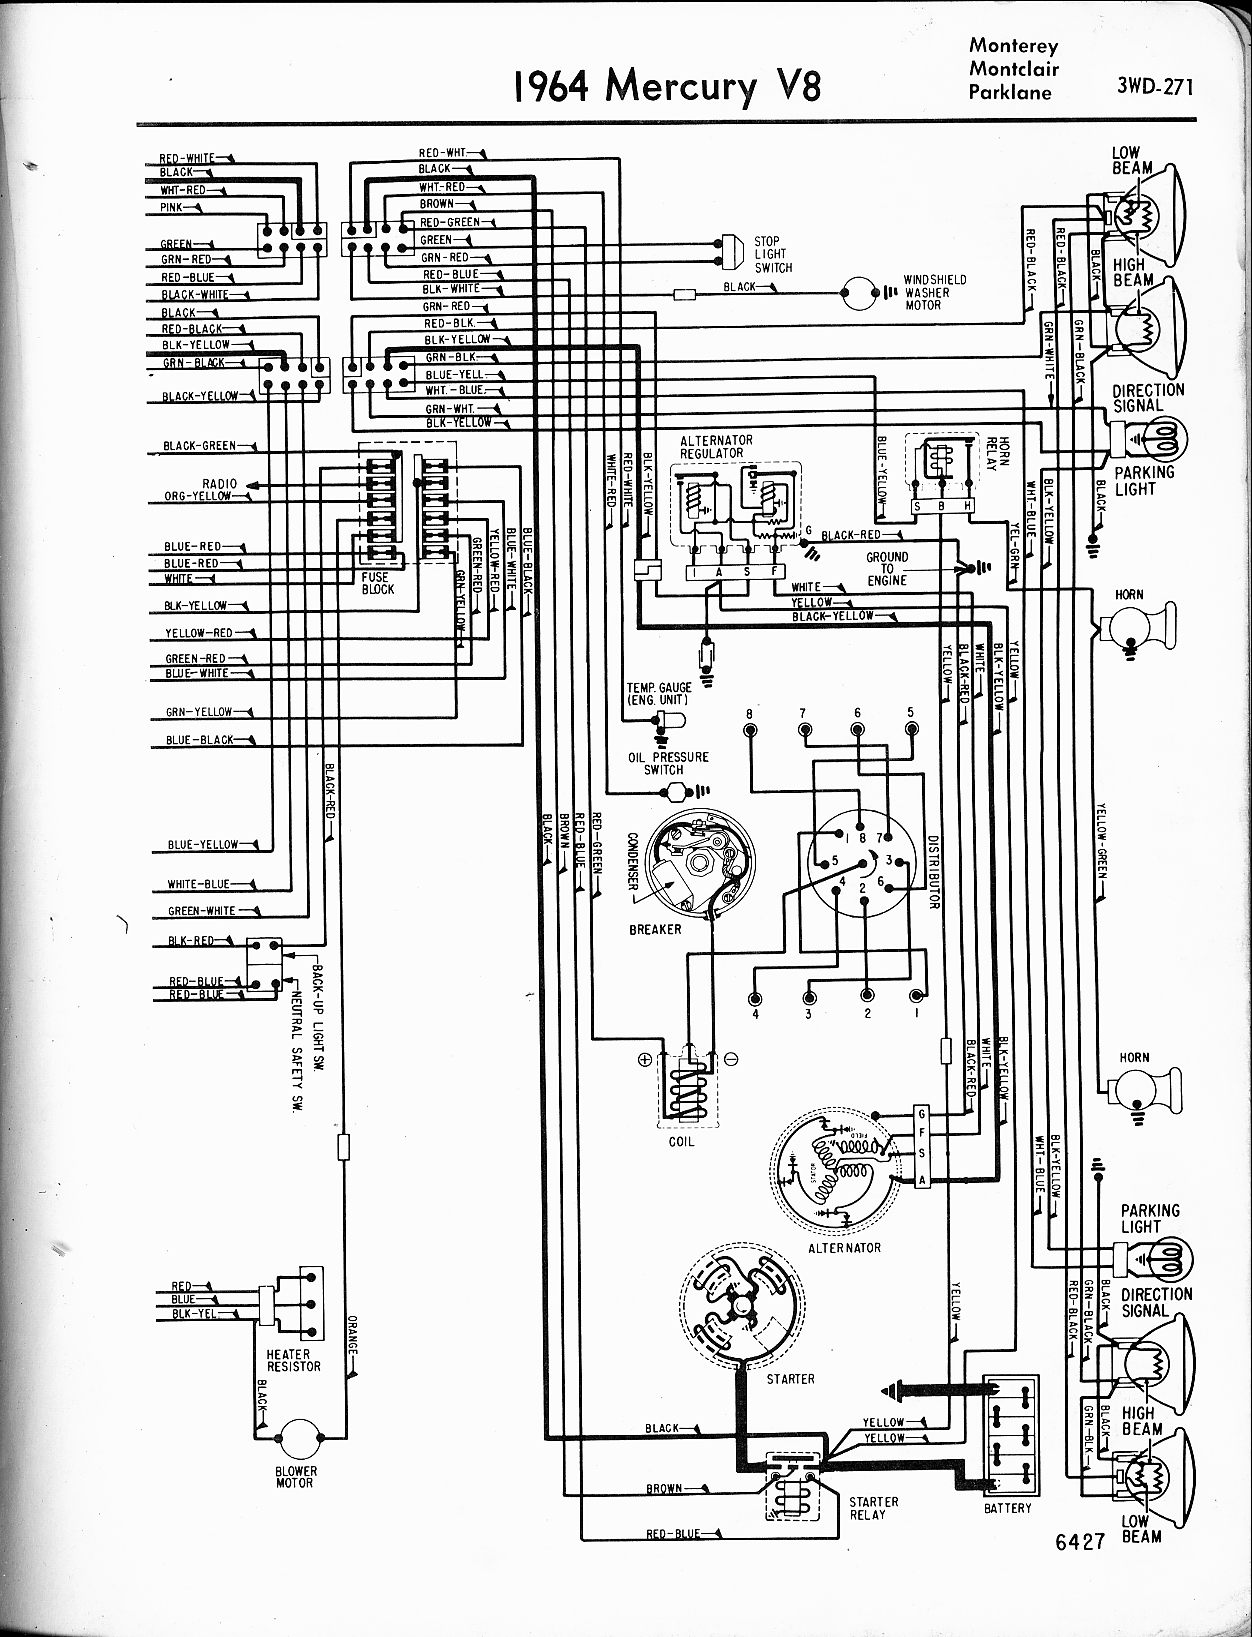 Fantastic 1964 Ford Ranchero Fuse Box Diagram Wiring Diagram Data Schema Wiring Cloud Philuggs Outletorg